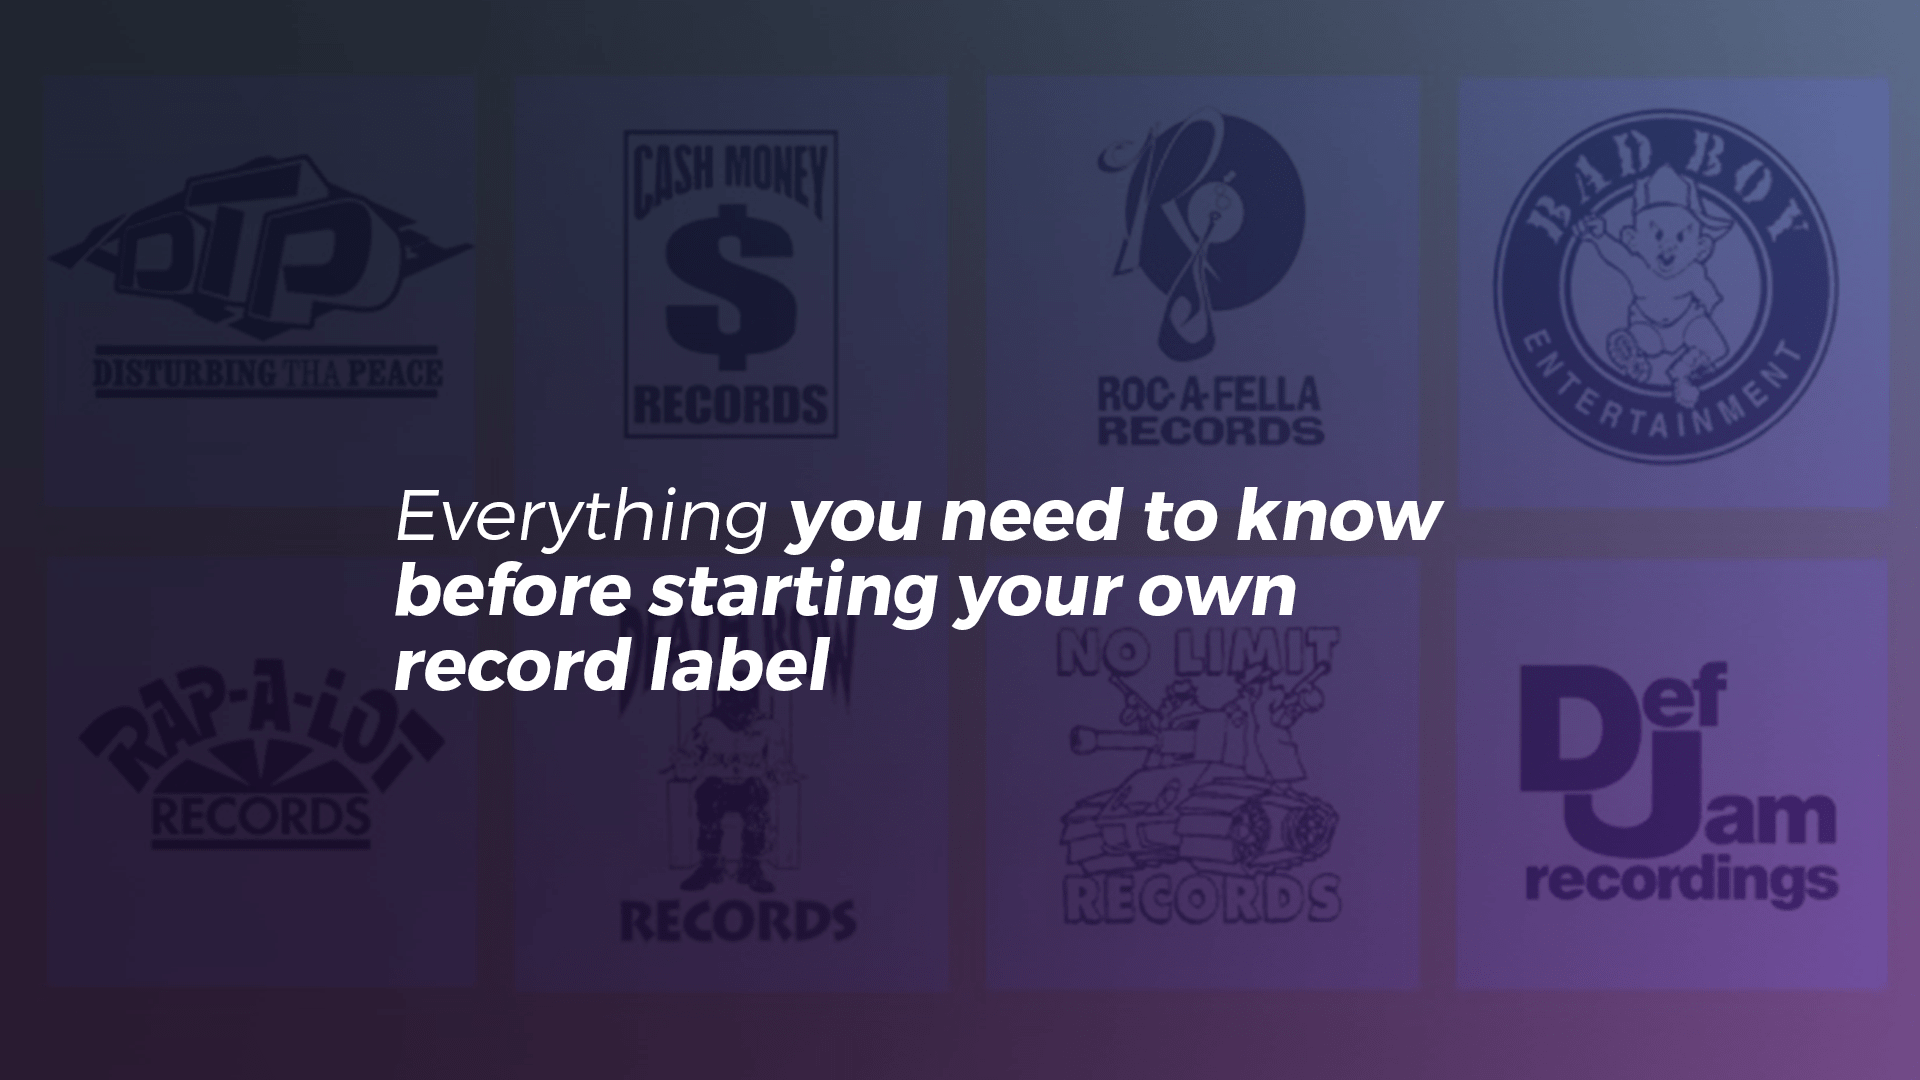 How to start your own record label